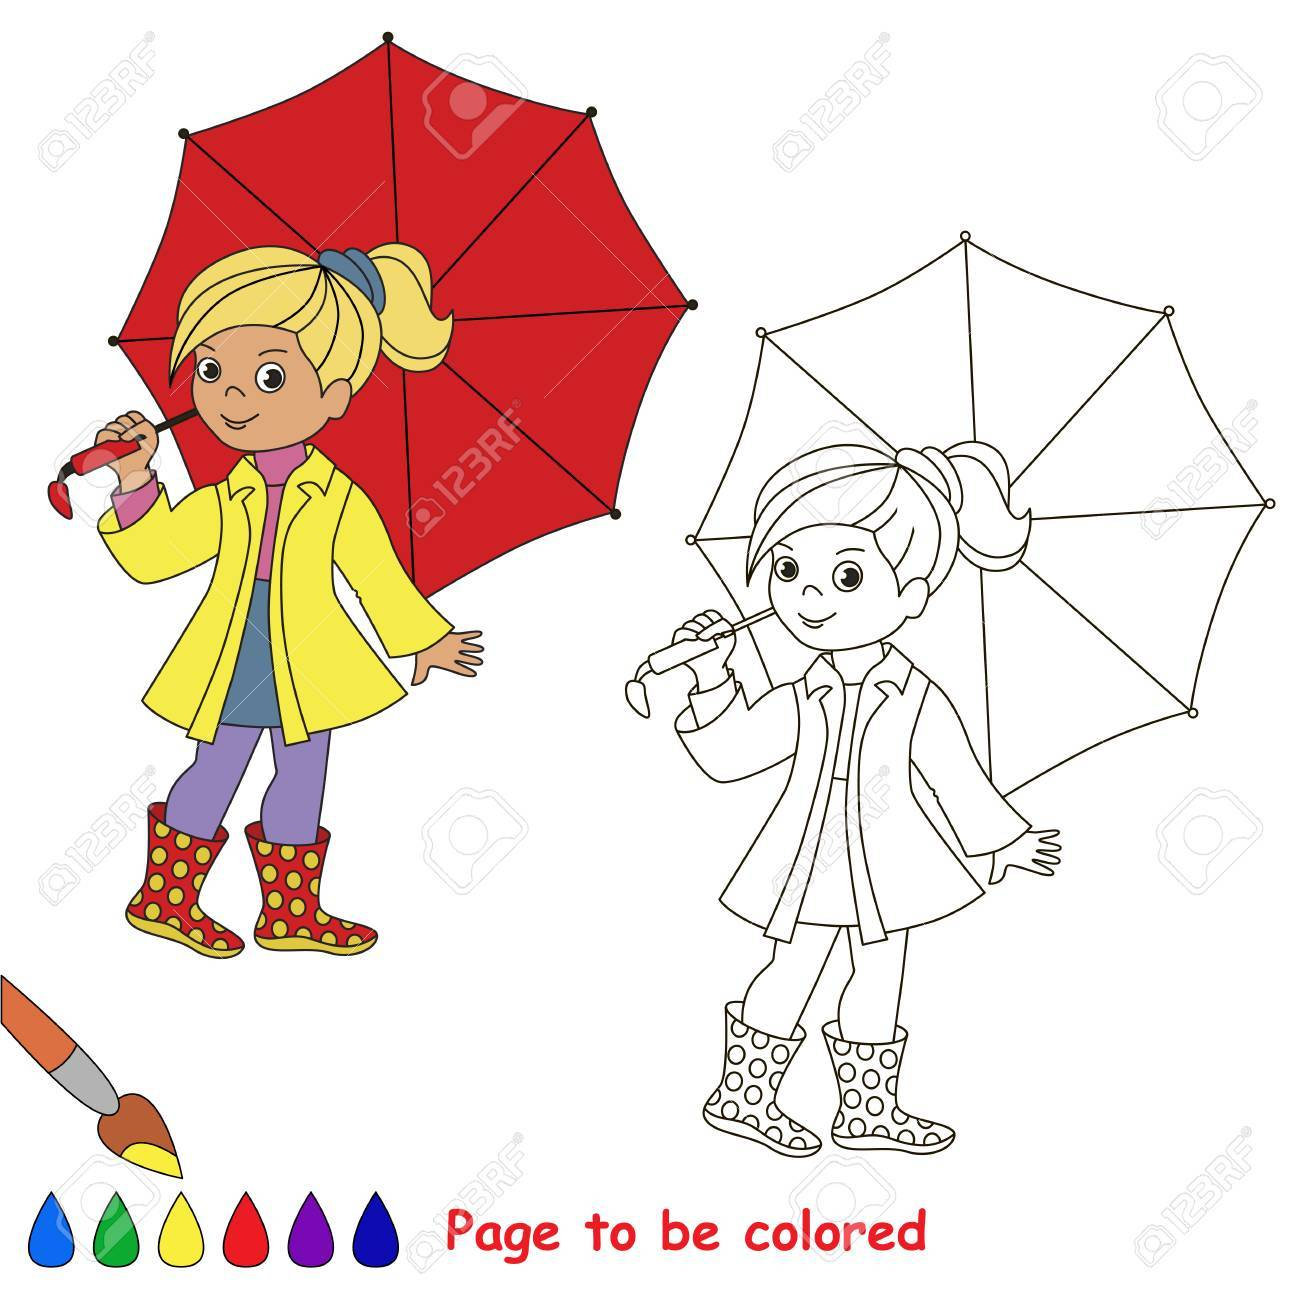 Girl And Red Umbrella To Be Colored The Coloring Book For Preschool Kids With Easy